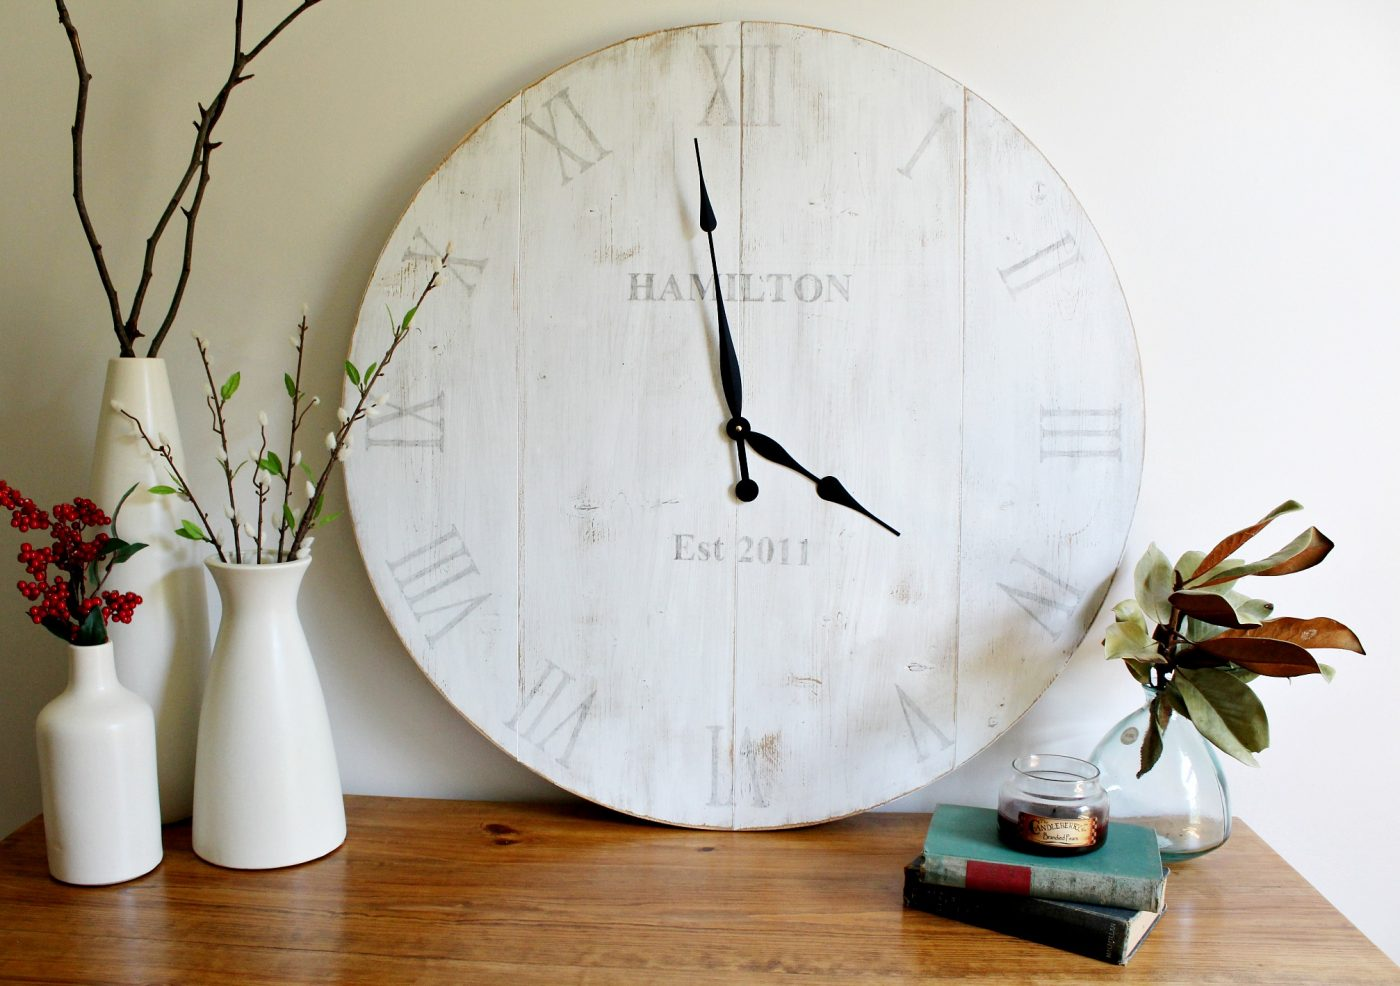 Diy Clock Part - 47: DIY Wooden Wall Clock With Personalization--make Your Own With This Free  Tutorial